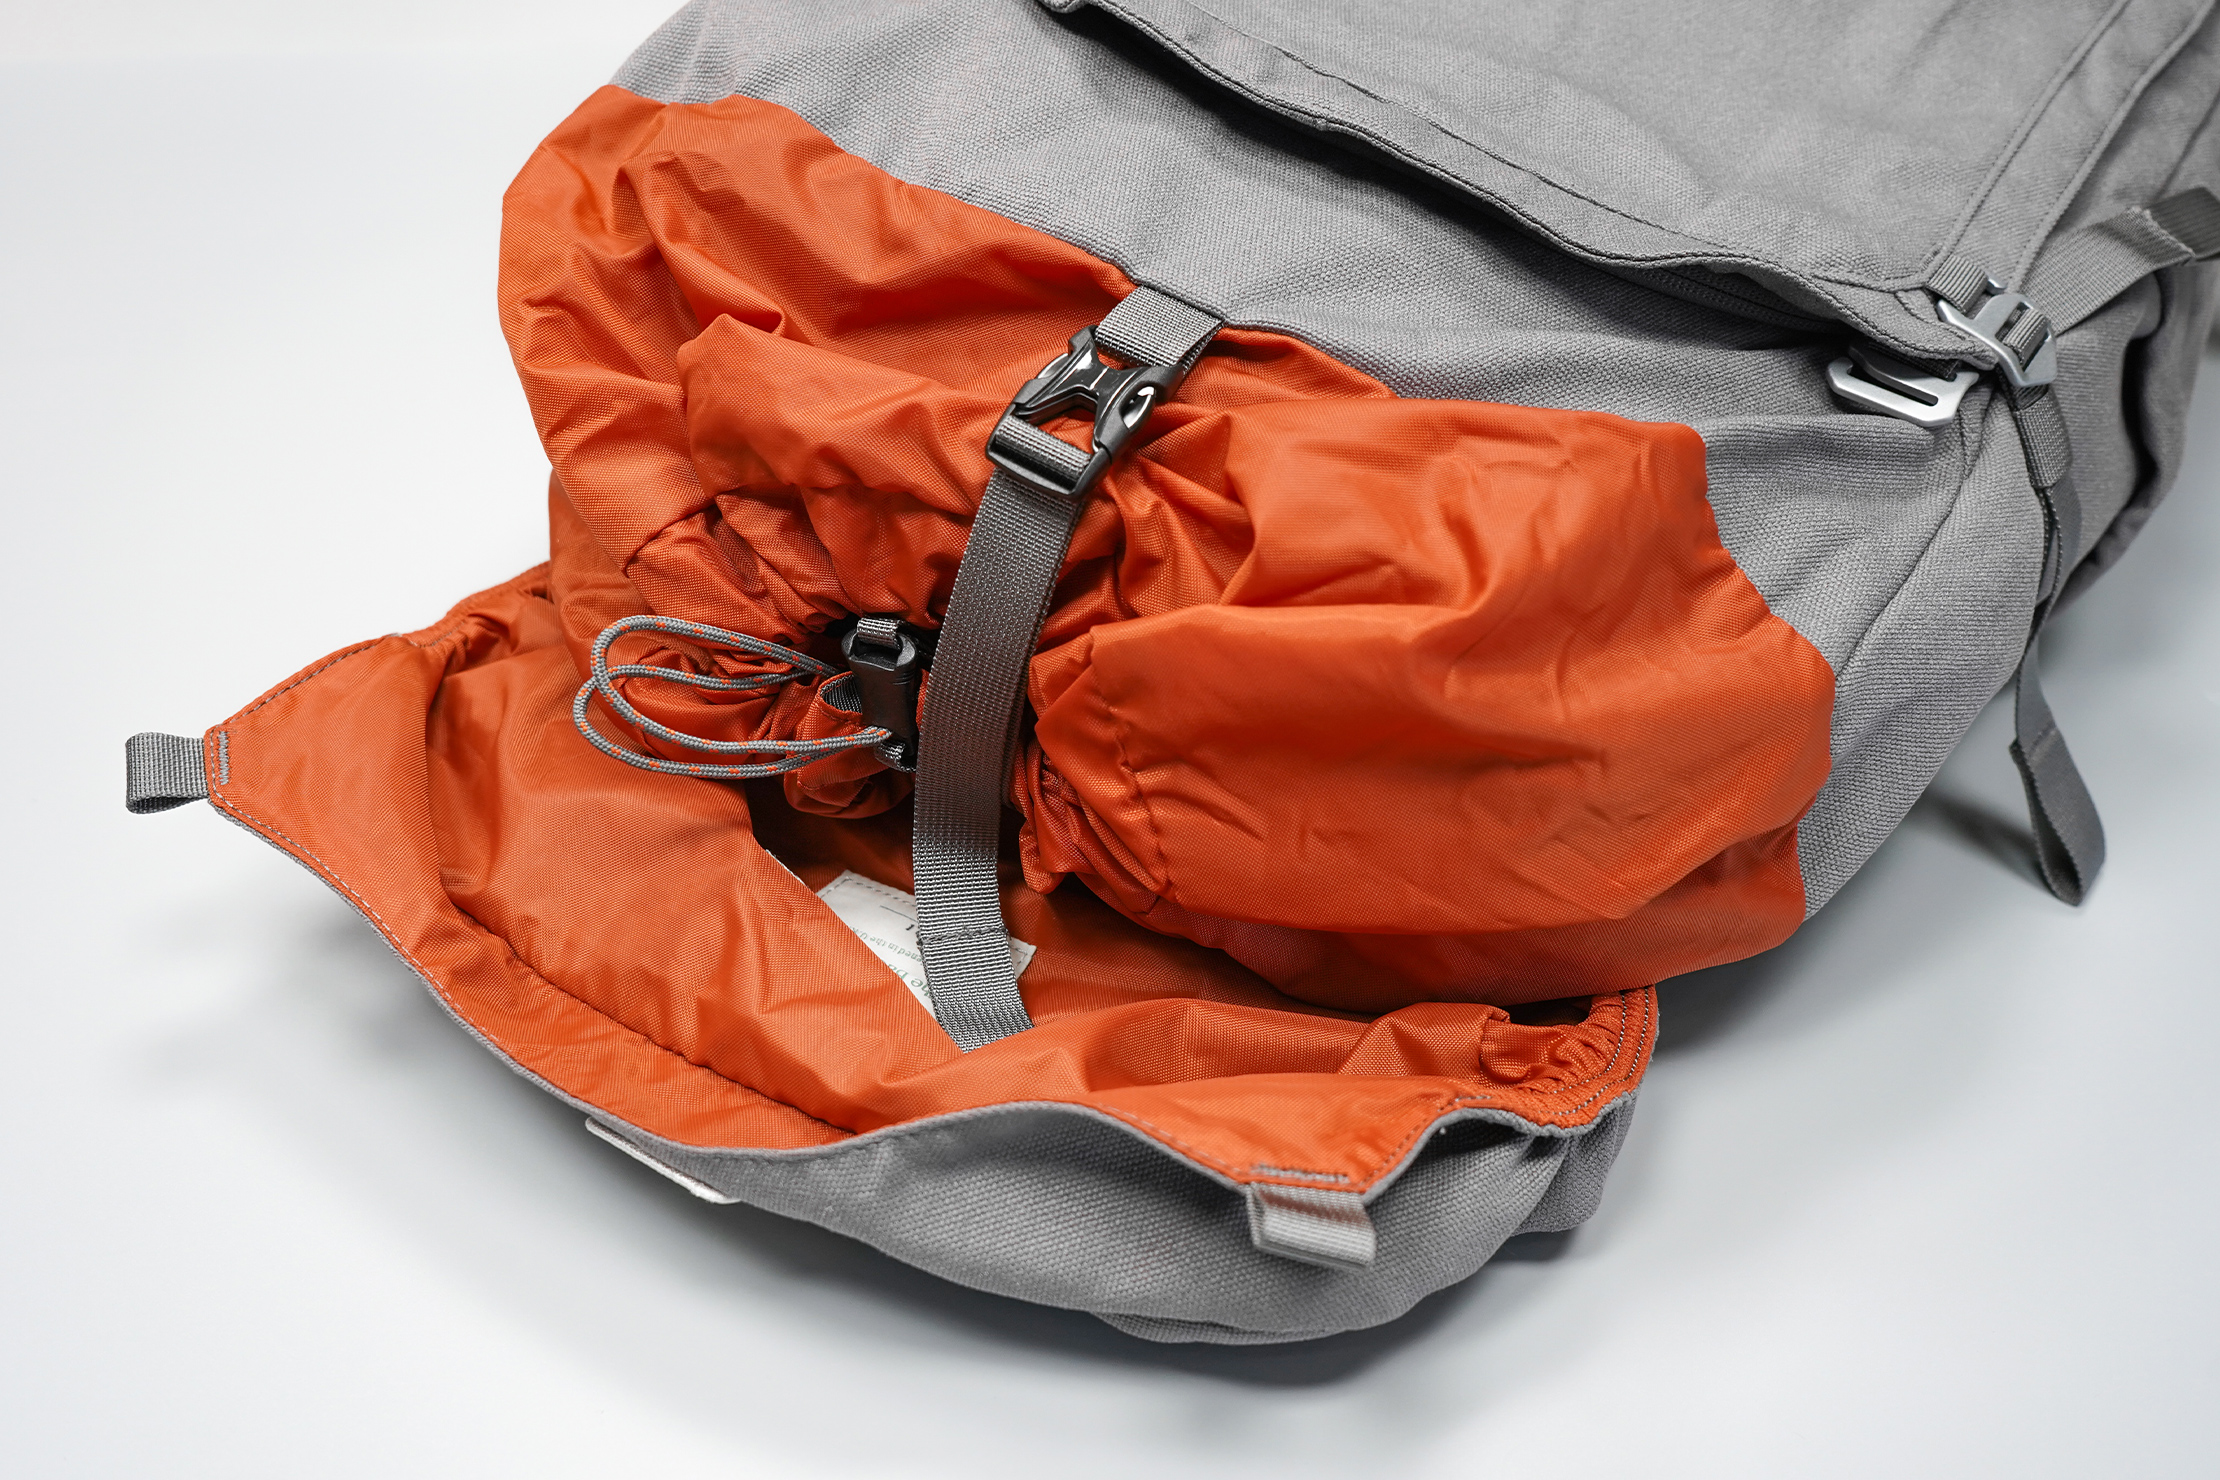 Salkan Backpacker | Under the flap, there's a drawstring and buckle for extra security